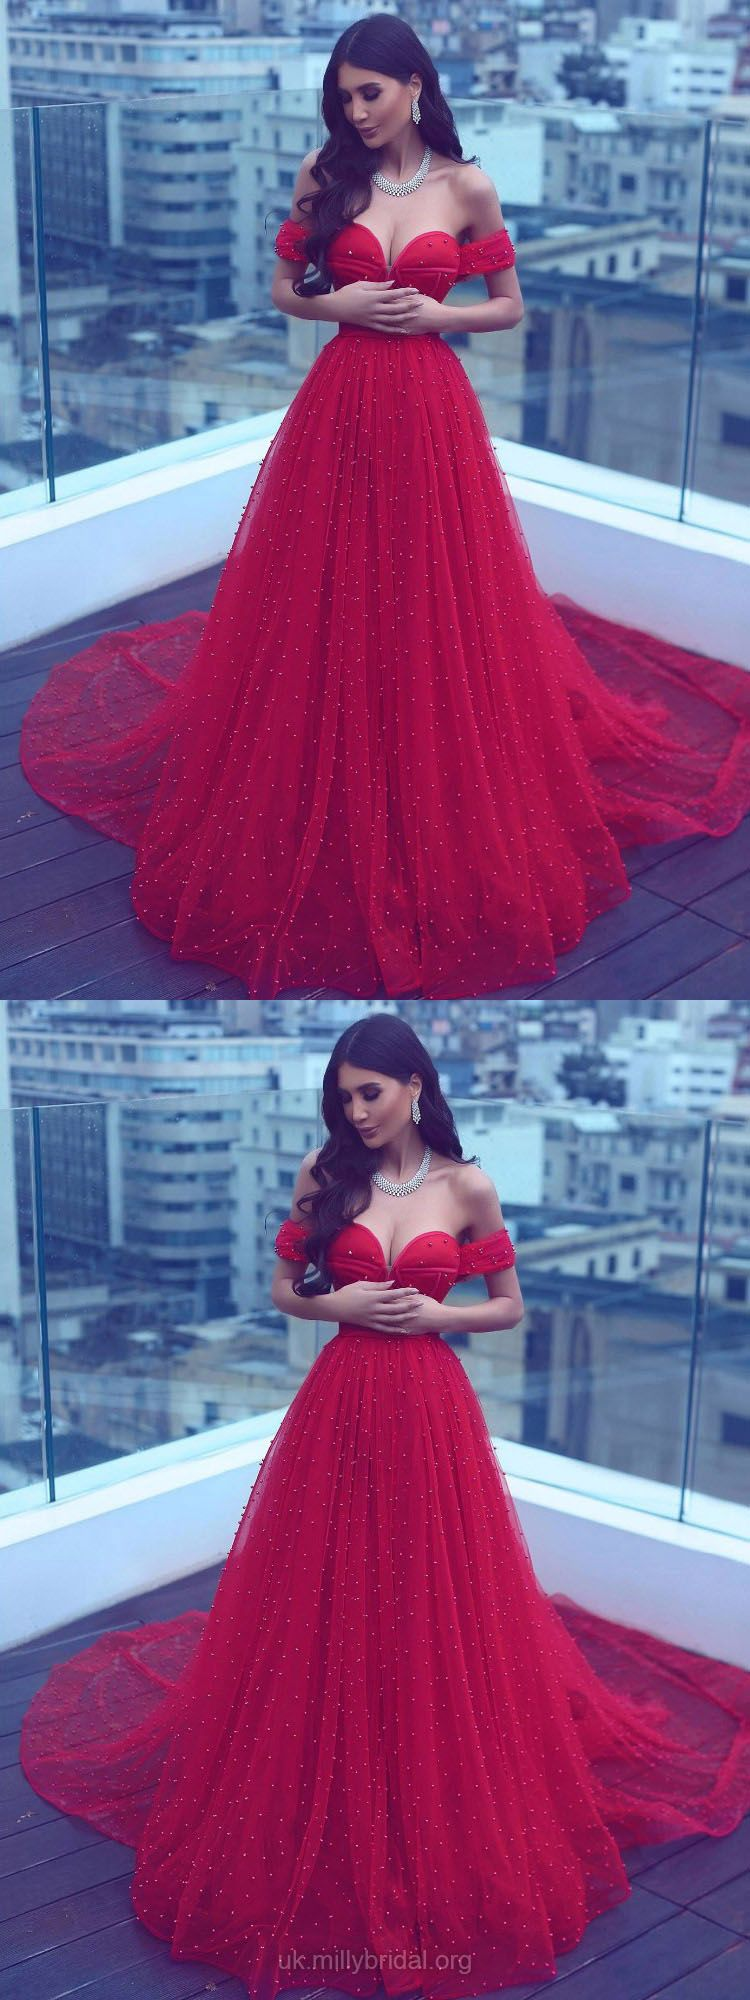 Long prom dresses red princesses prom dresses for teens